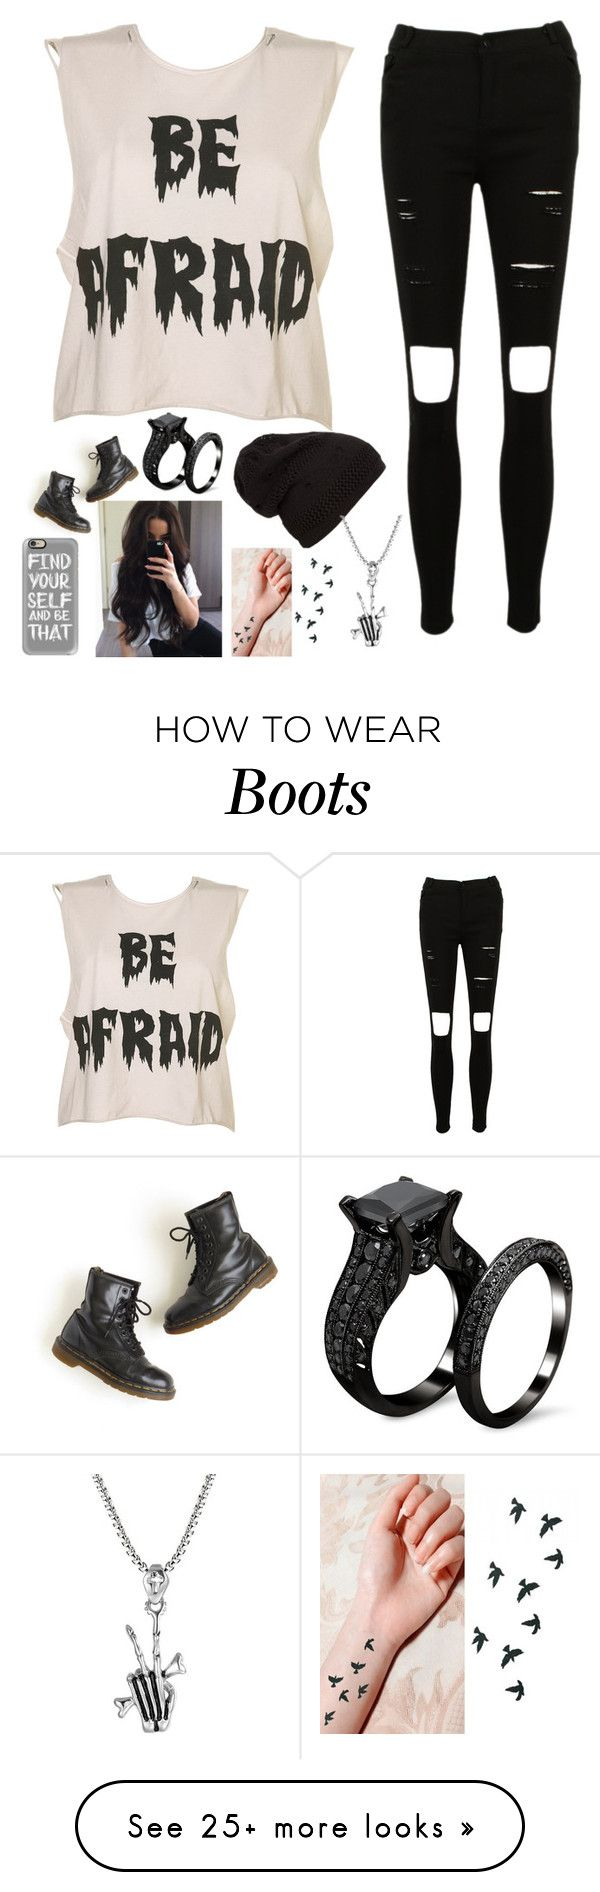 """Untitled #1760"" by tokyoghoul1 on Polyvore featuring Dr. Martens and Casetify"